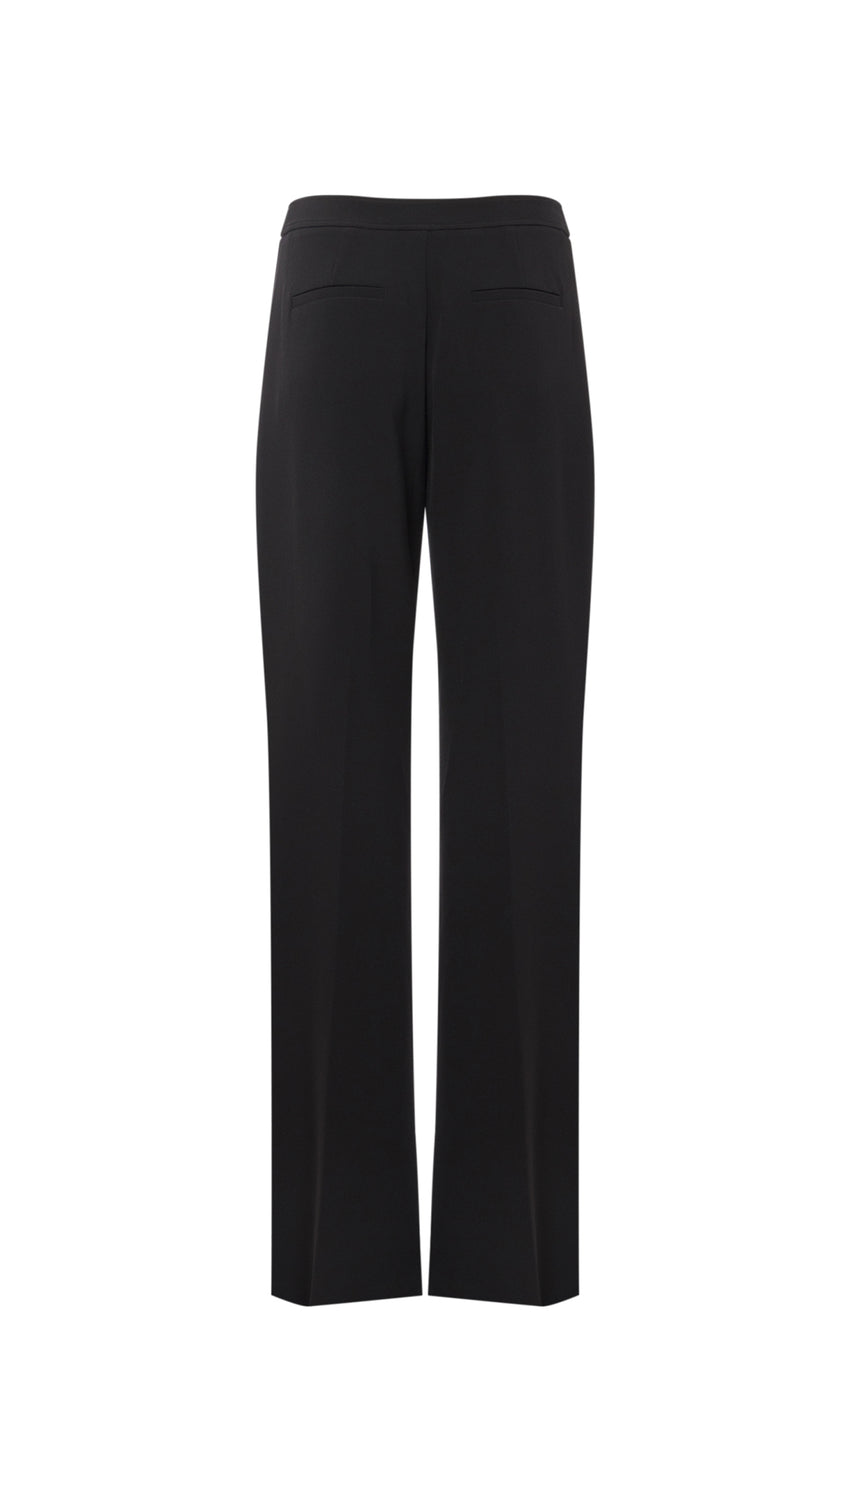 Wide Leg Trouser in Jet